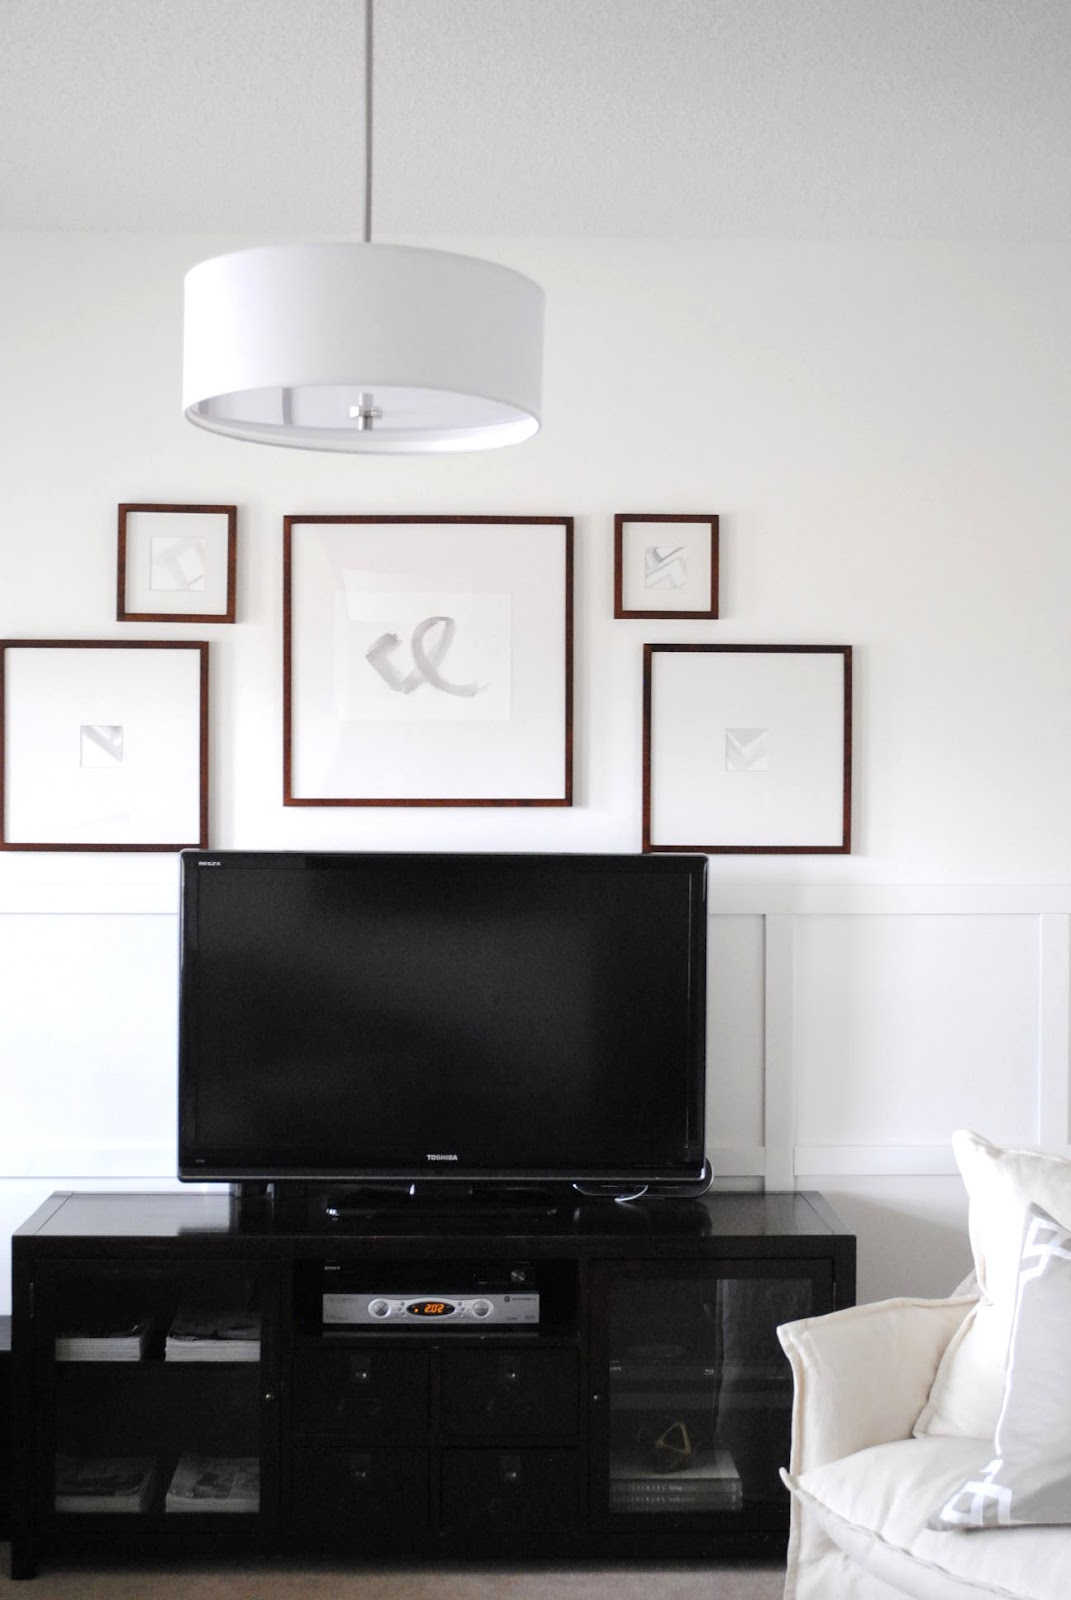 Wall Decoration Above Tv : Flourish design style framing a tv with gallery wall